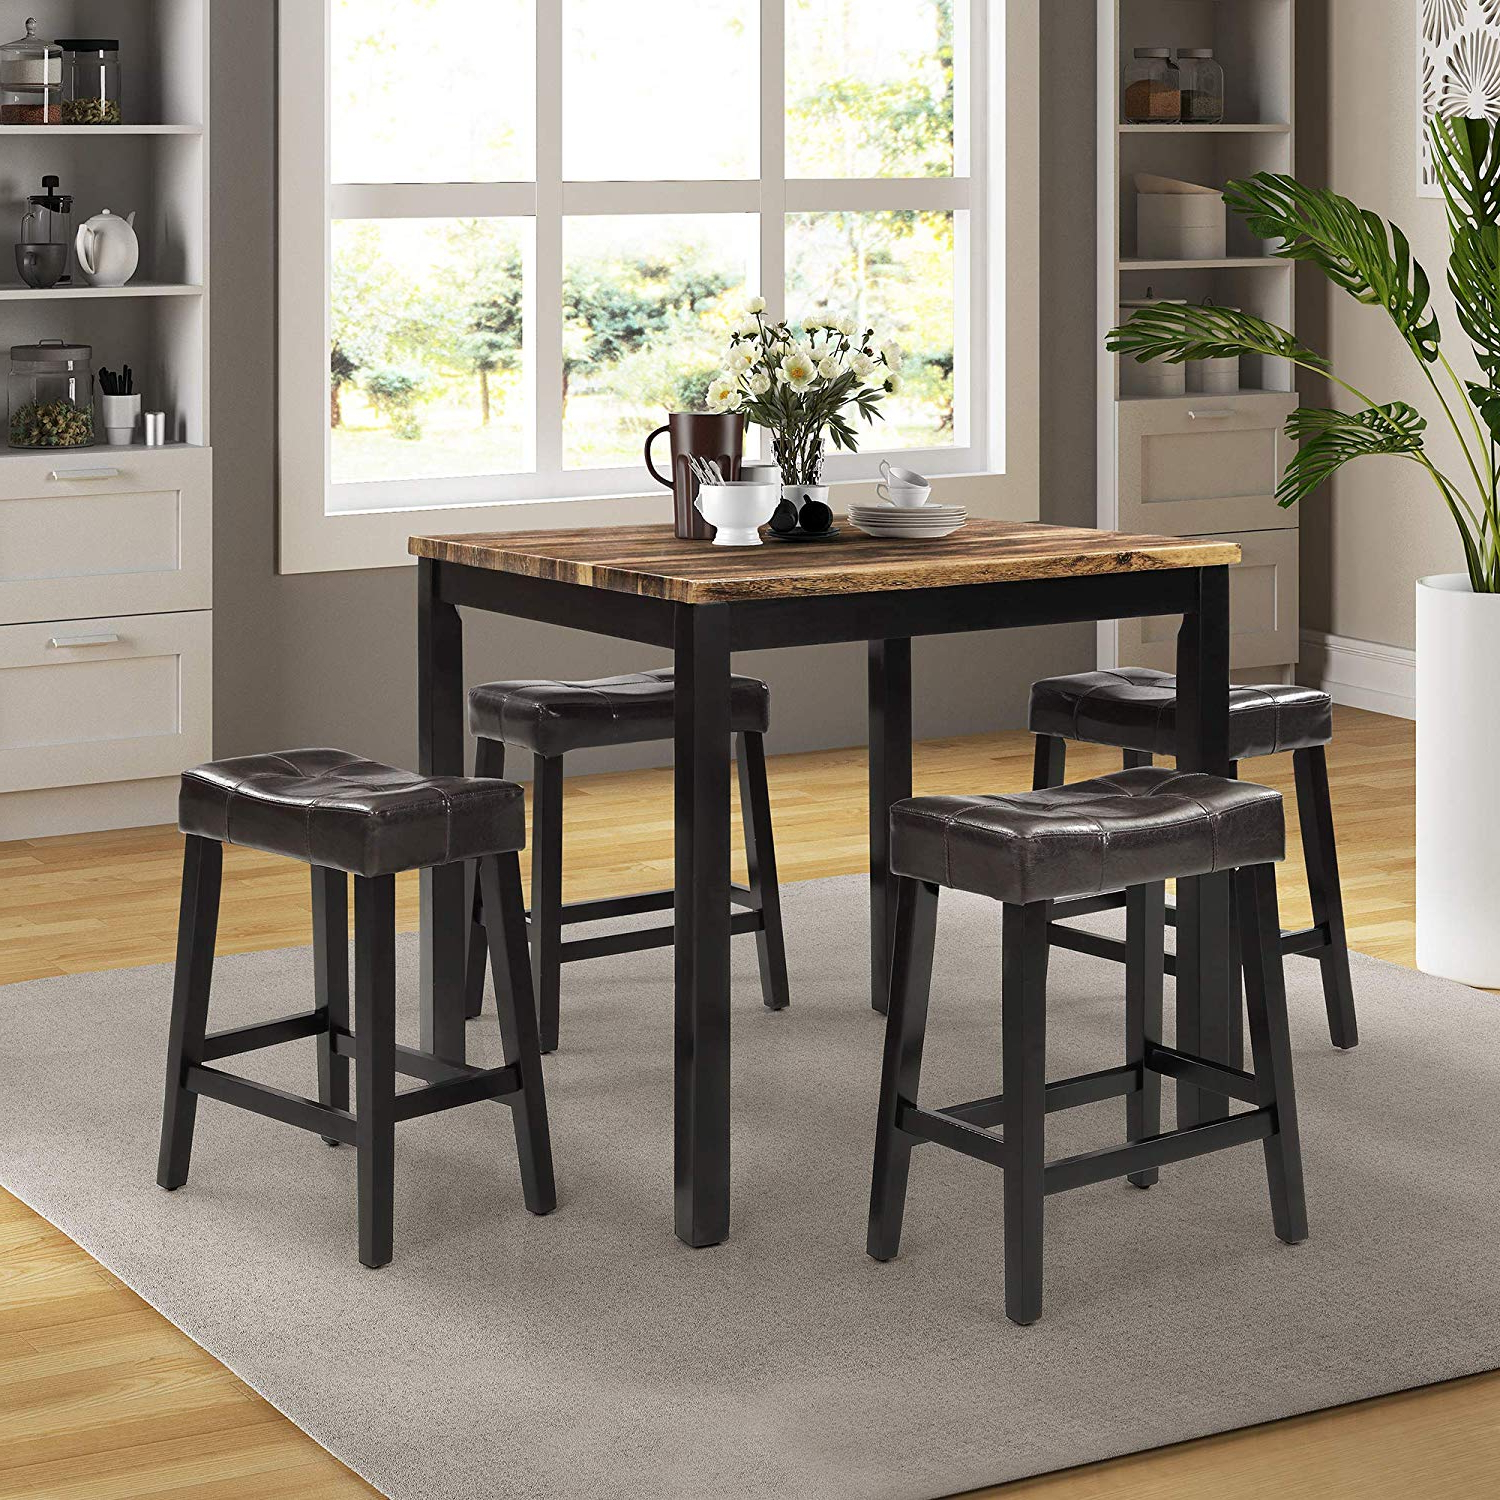 Most Recent Lokesi Kitchen Table Set, 5 Pieces Faux Marble Top Counter Height Dining  Table Set With 4 Stools (Brown) Inside Faux Marble Finish Metal Contemporary Dining Tables (View 14 of 25)